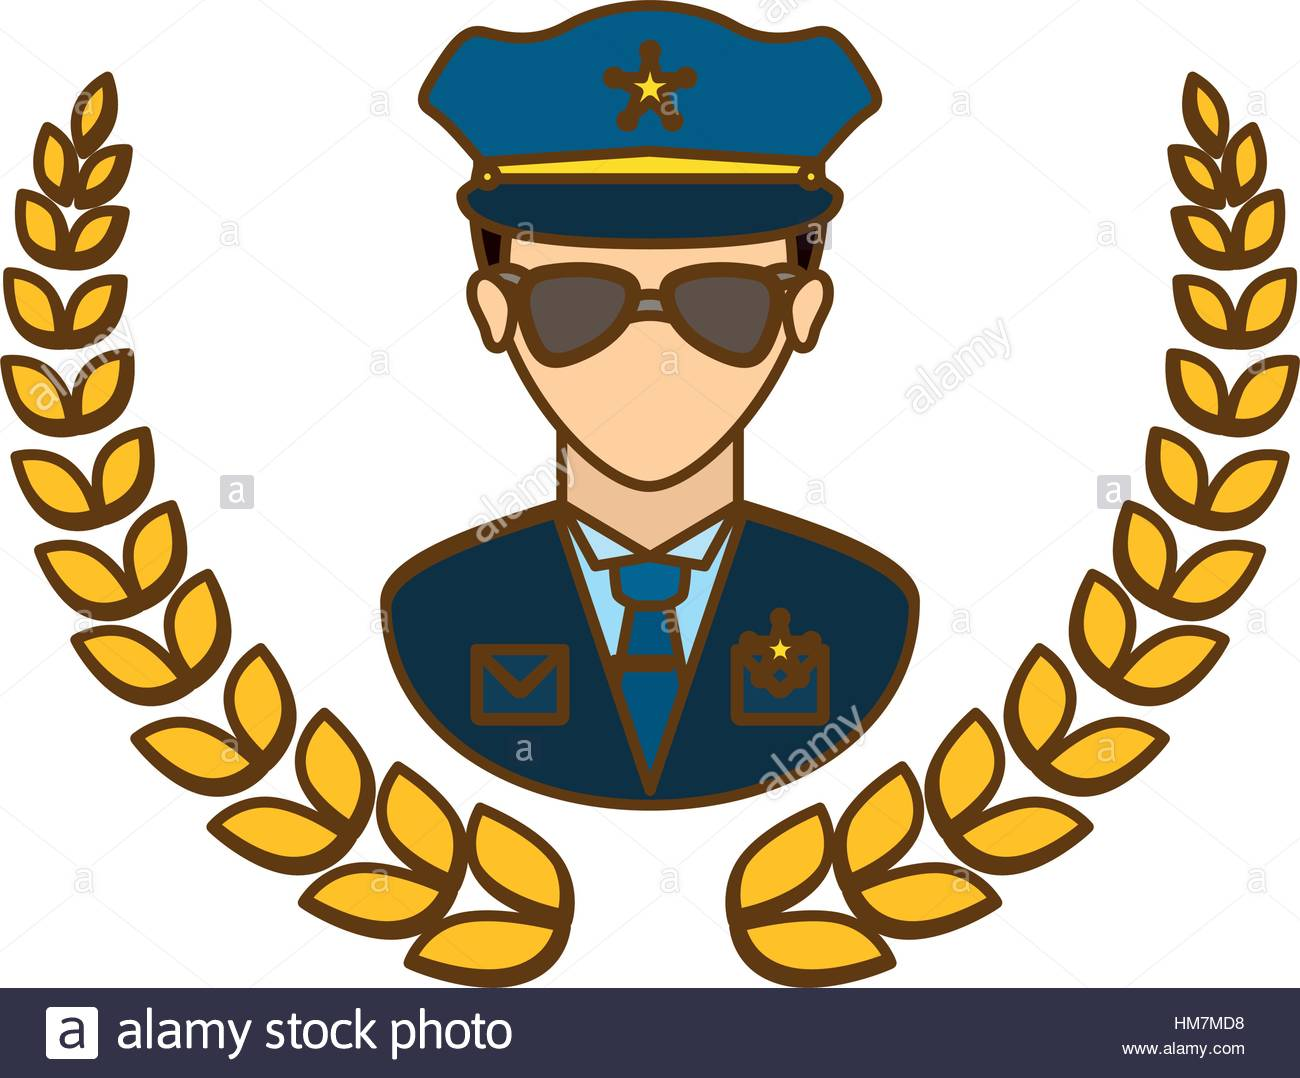 1300x1078 Gold Police Badge Icon Image, Vector Illustration Stock Vector Art